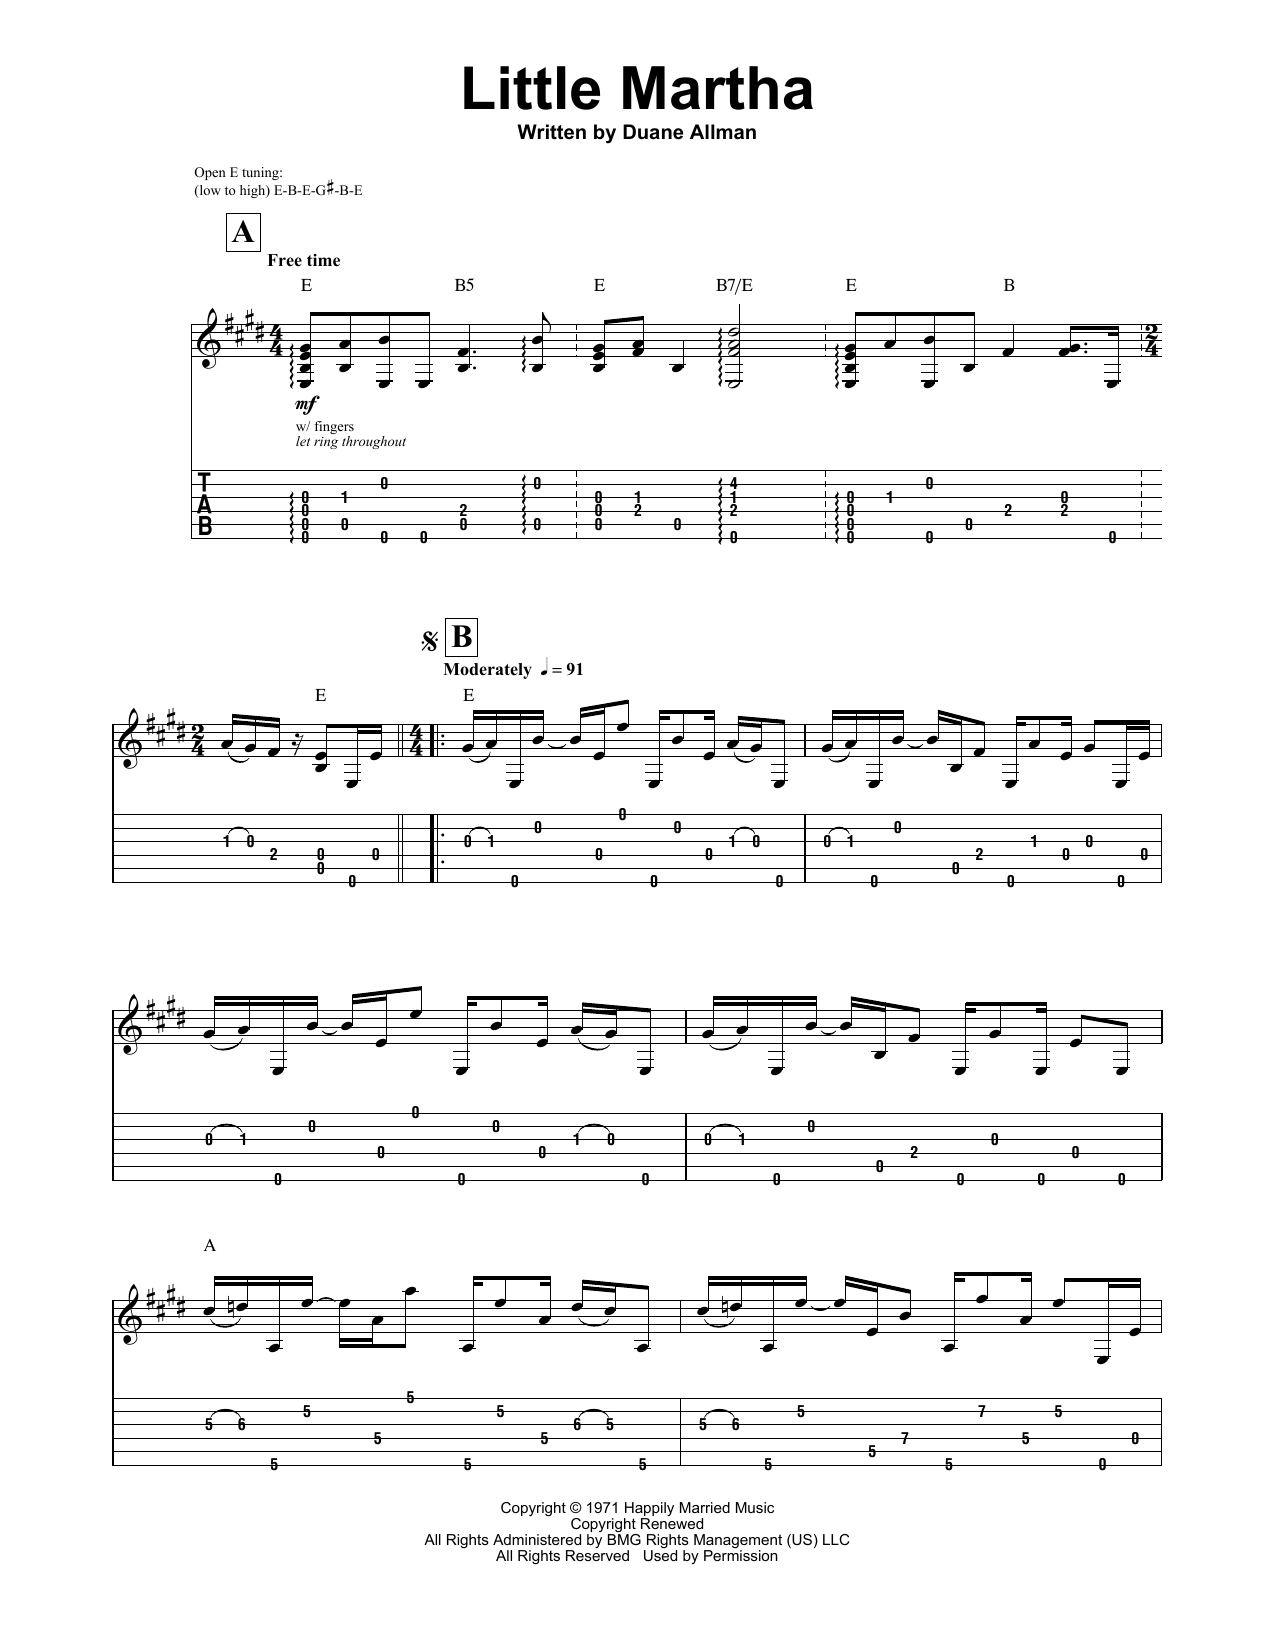 Allman Brothers Band Little Martha Sheet Music Notes Chords